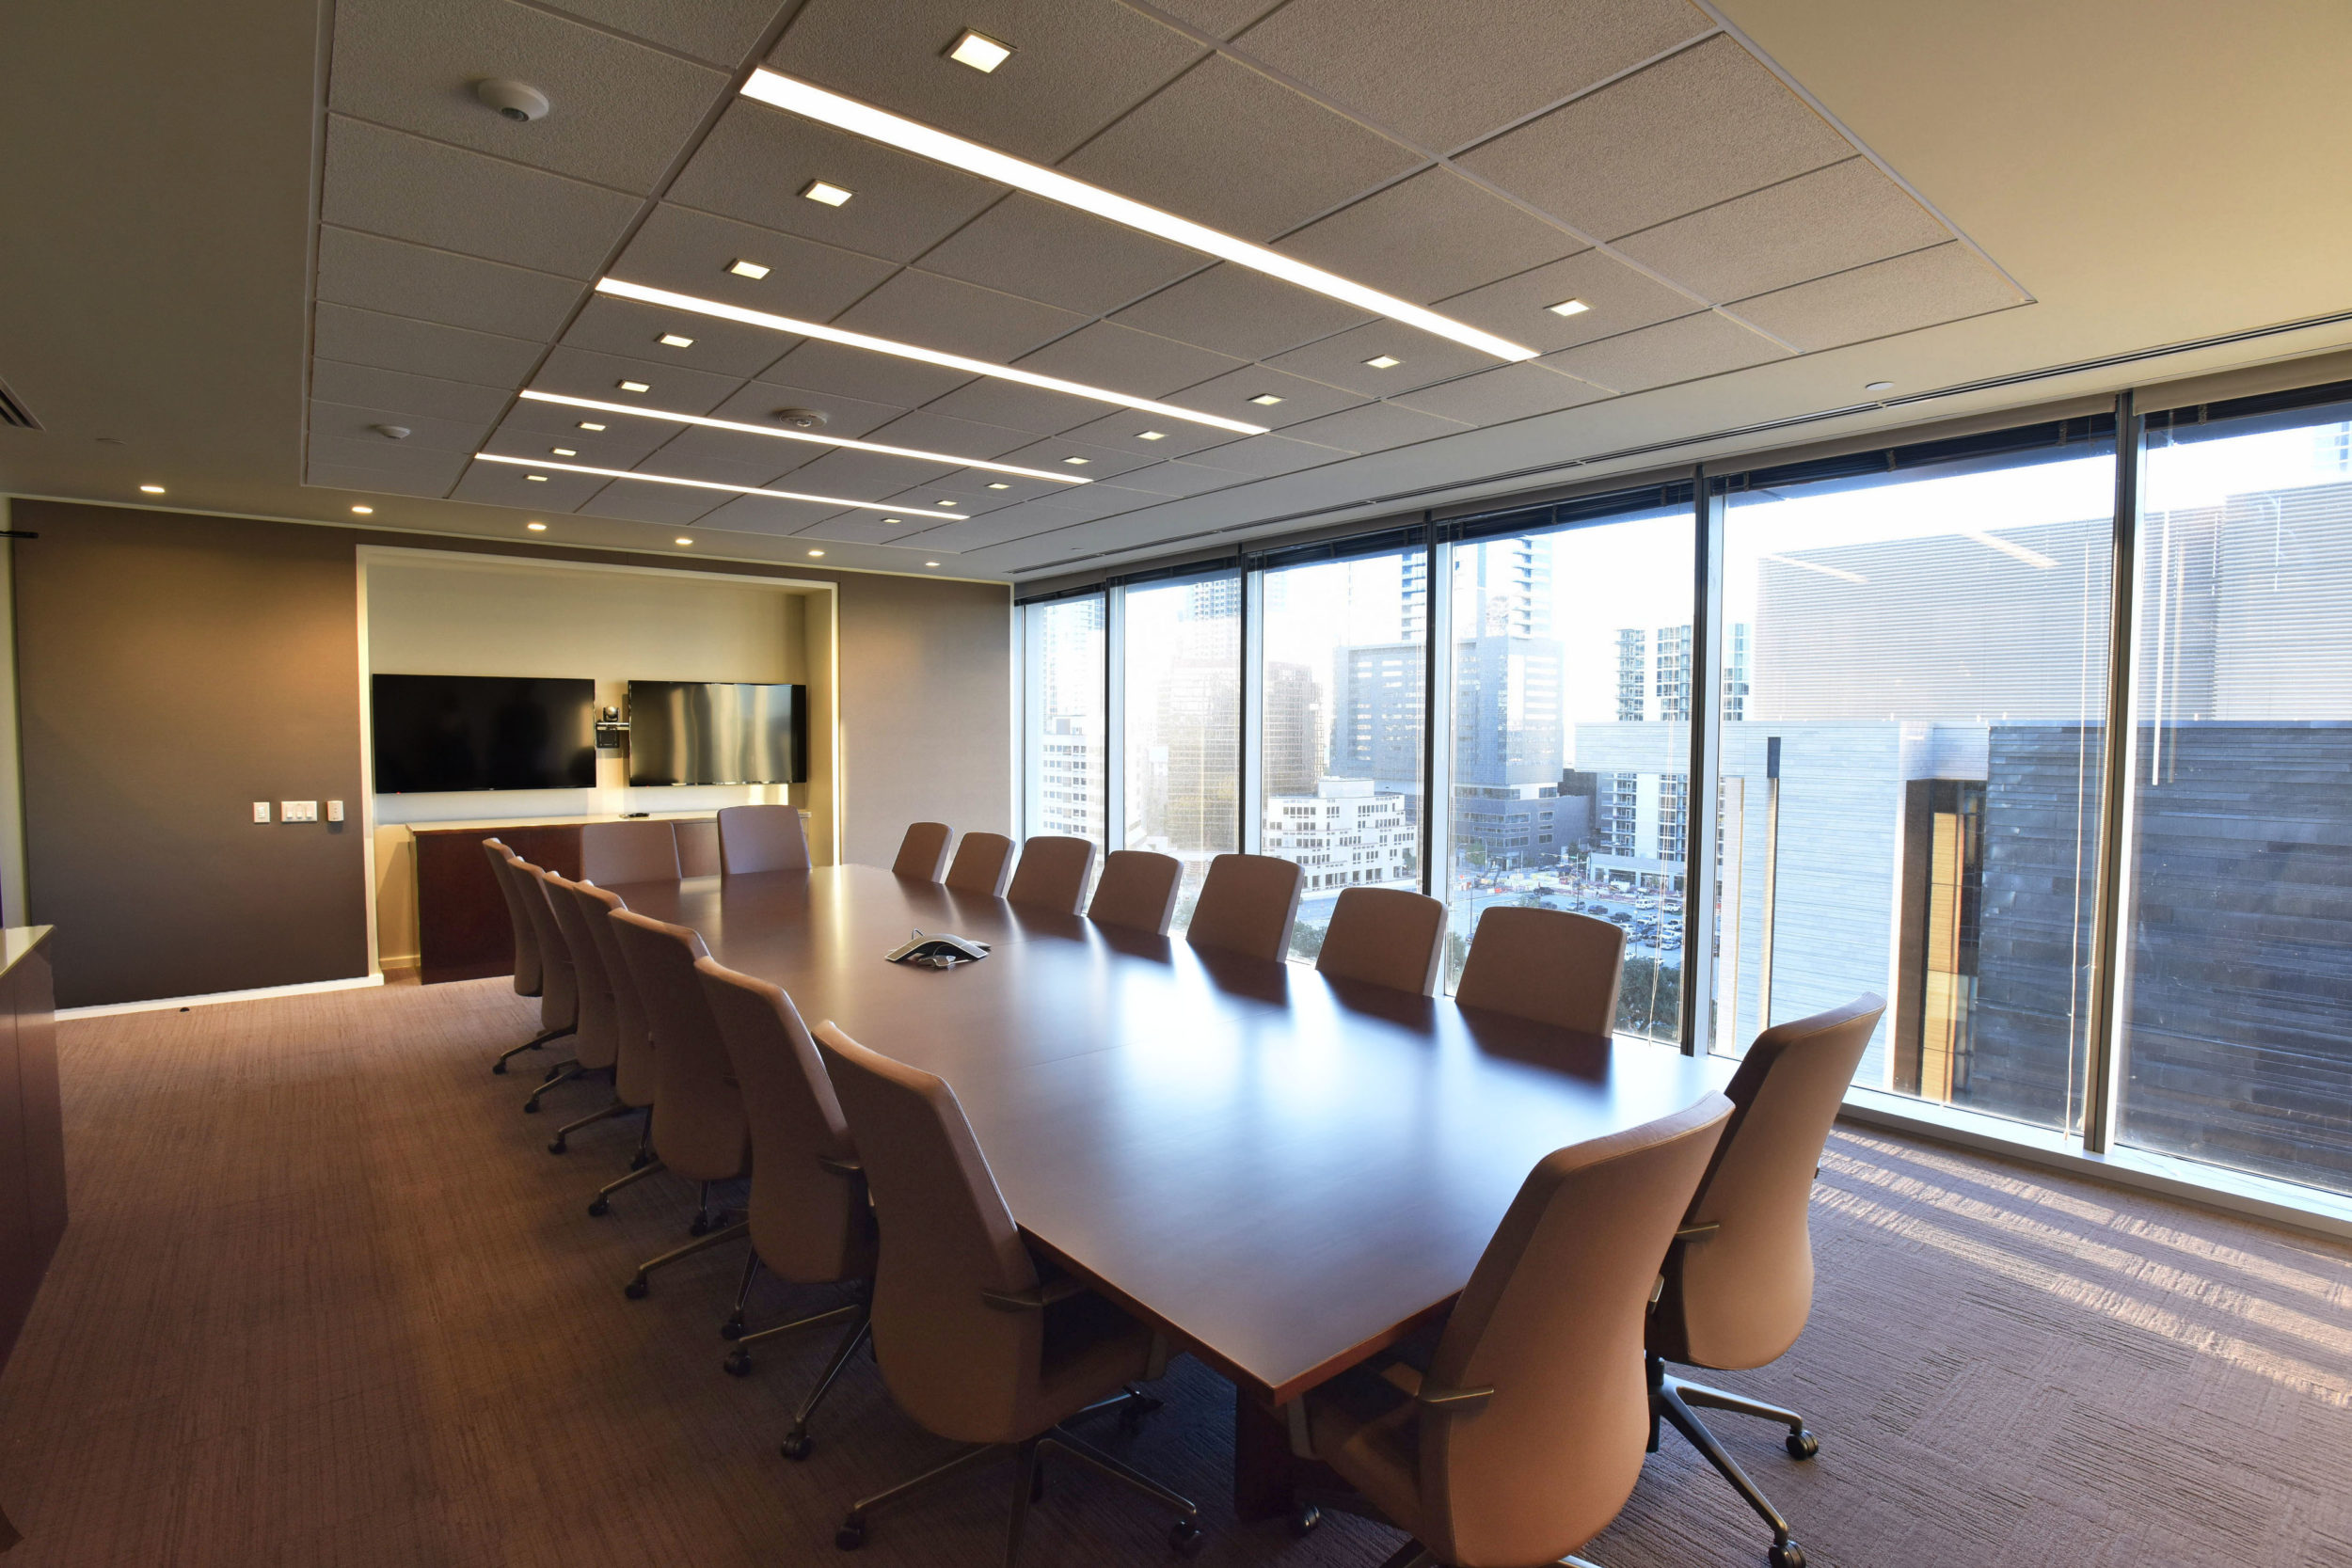 Image of the Hill + Knowlton Conference Room